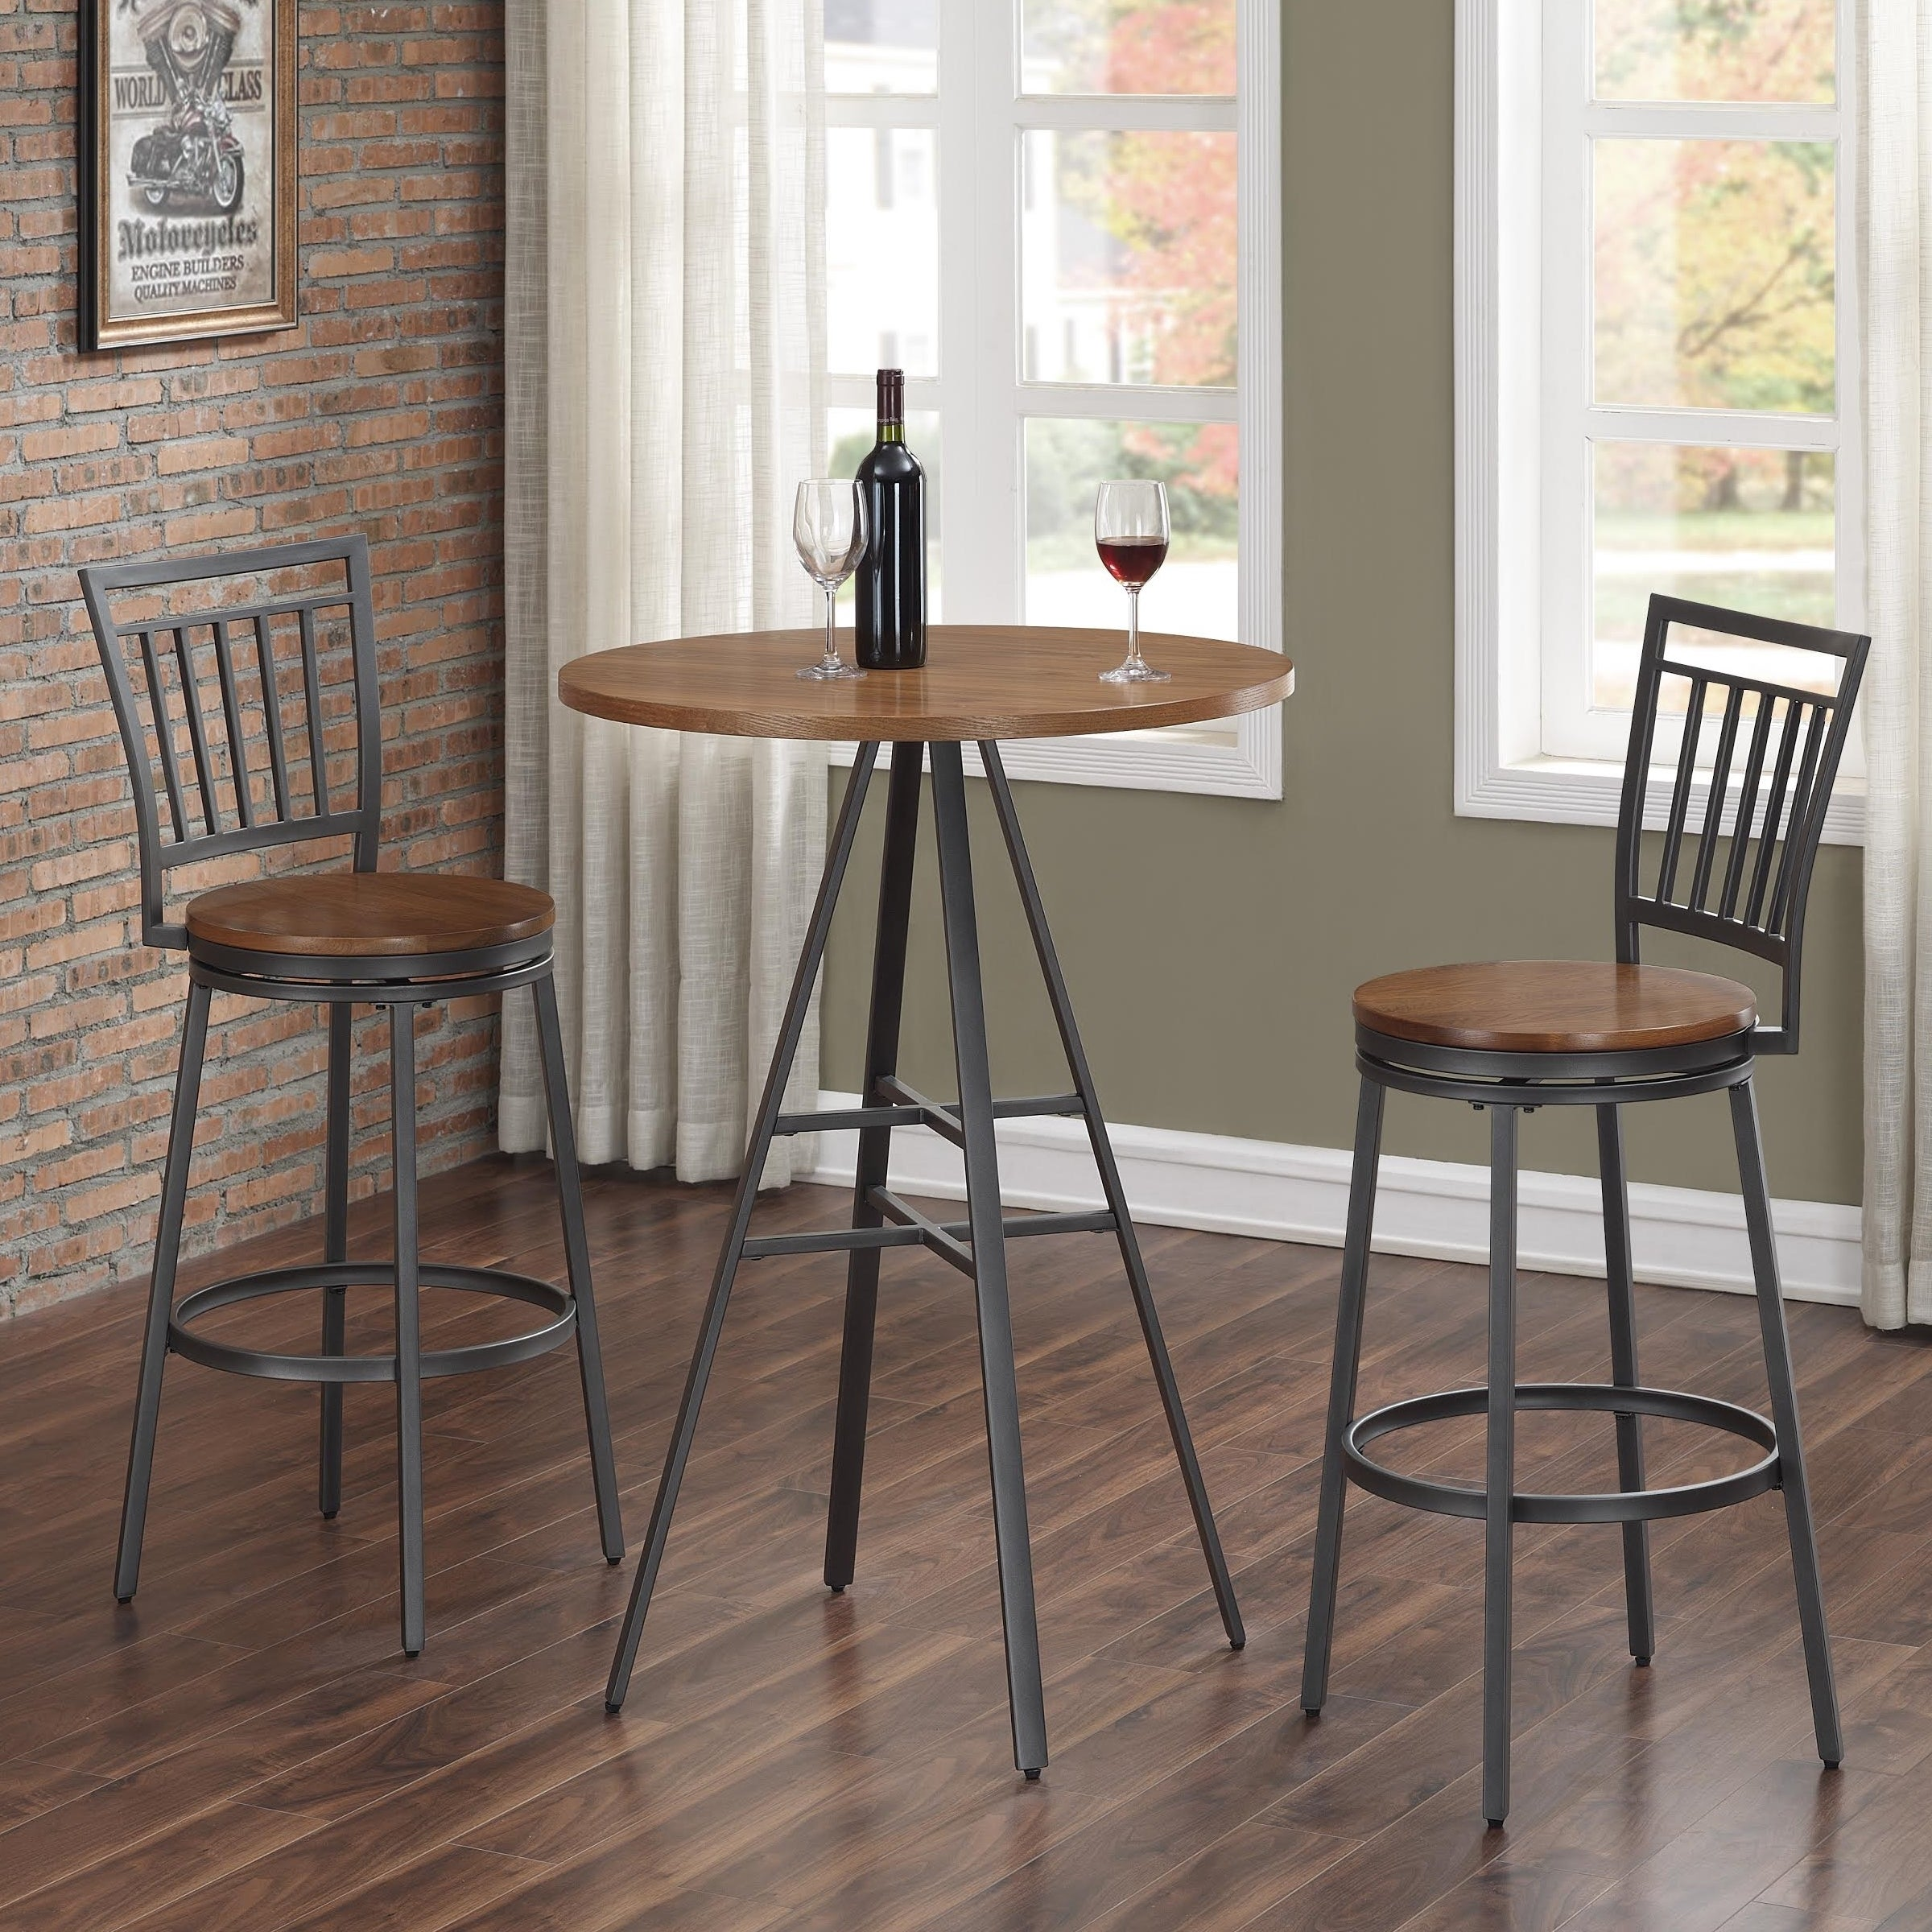 Picture of: Finley 3 Piece Pub Table Set By Greyson Living See Product Description See Product Description On Sale Overstock 14783259